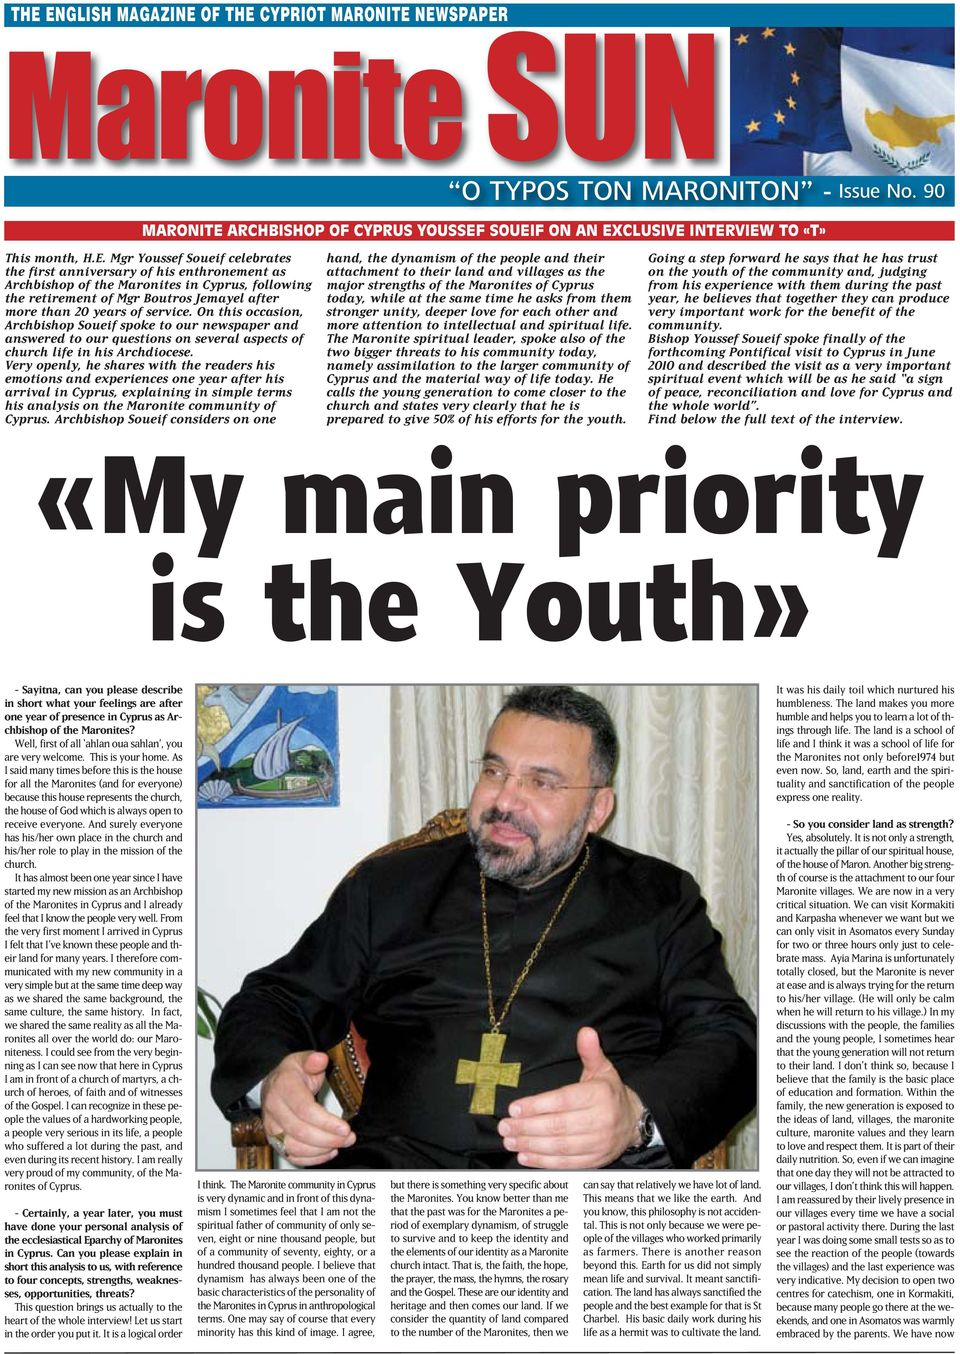 Very openly, he shares with the readers his emotions and experiences one year after his arrival in Cyprs, explaining in simple terms his analysis on the Maronite commnity of Cyprs.